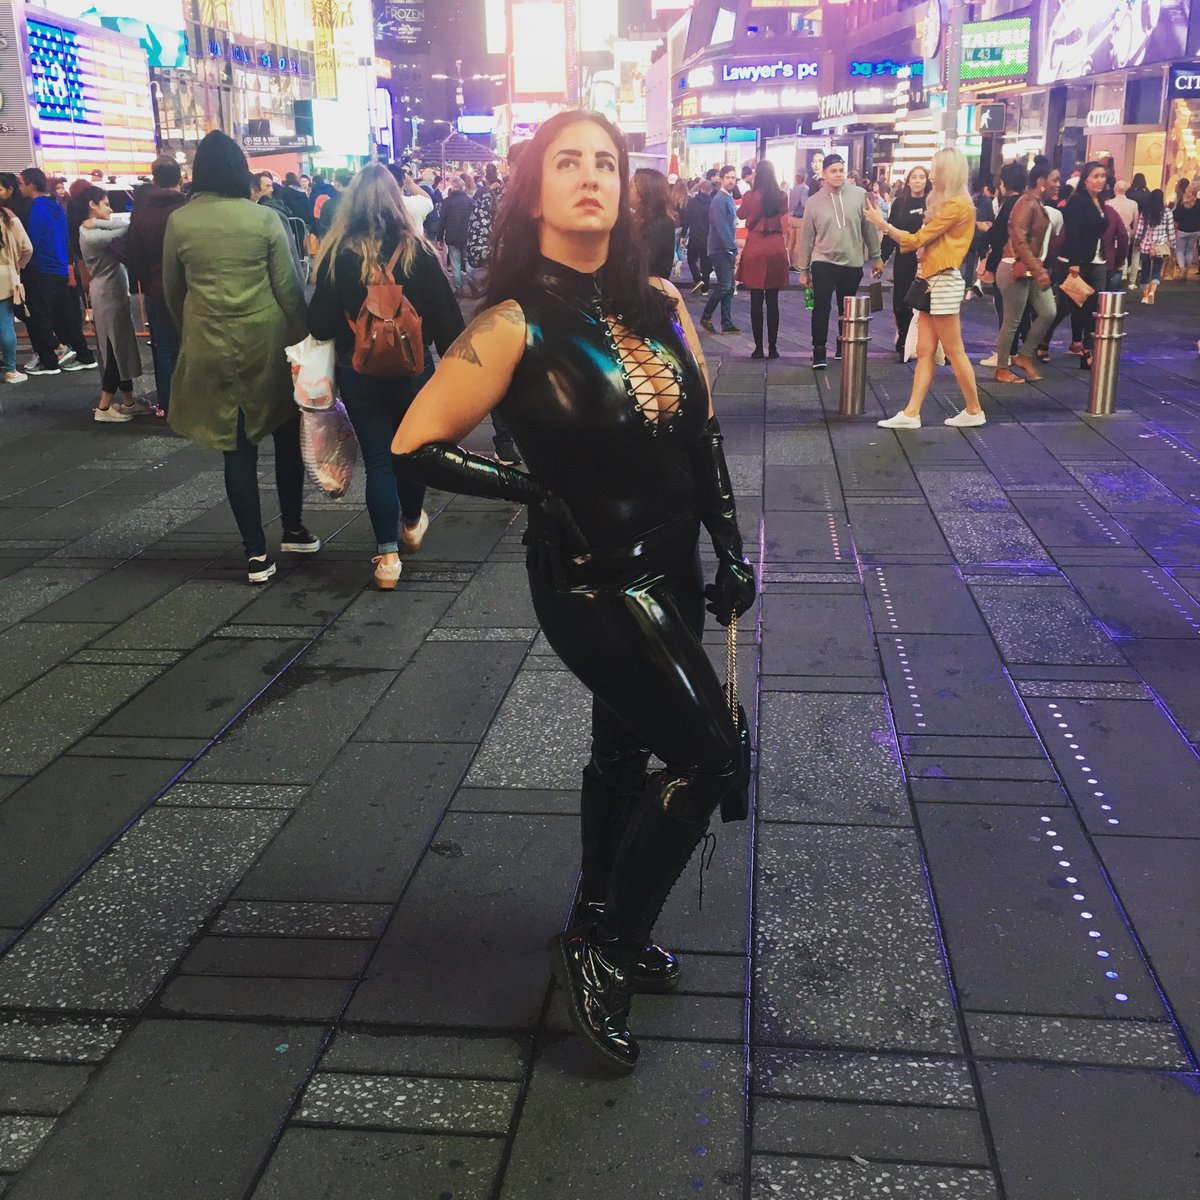 Tonight. The night is young #latexfetish #rubberfetish #mistressxena #nycdominatrix in #timessquare #nyc